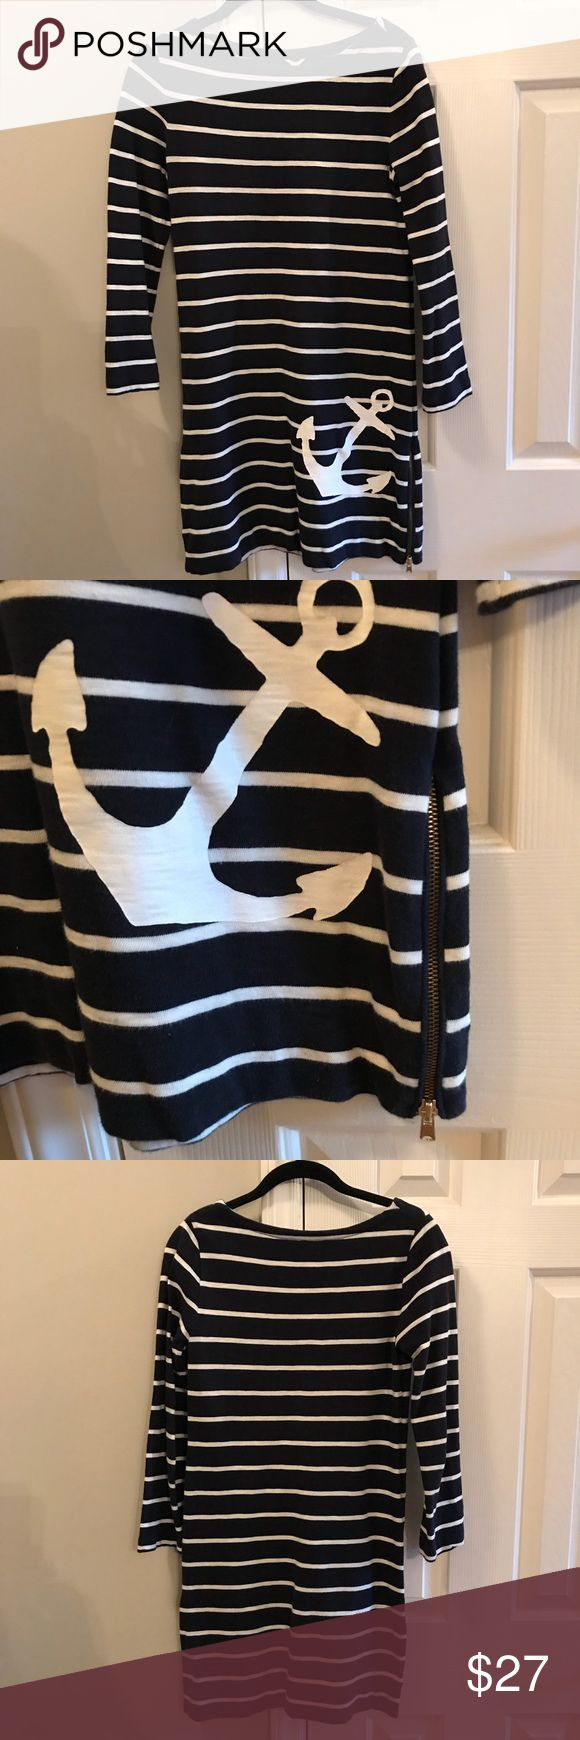 J. Crew maritime striped anchor dress Nautical vibes never go out of style! This dress is adorable, size XXS, in excellent condition. Navy with white stripes and anchor, with 2 zippers on each side of the bottom. J. Crew Dresses